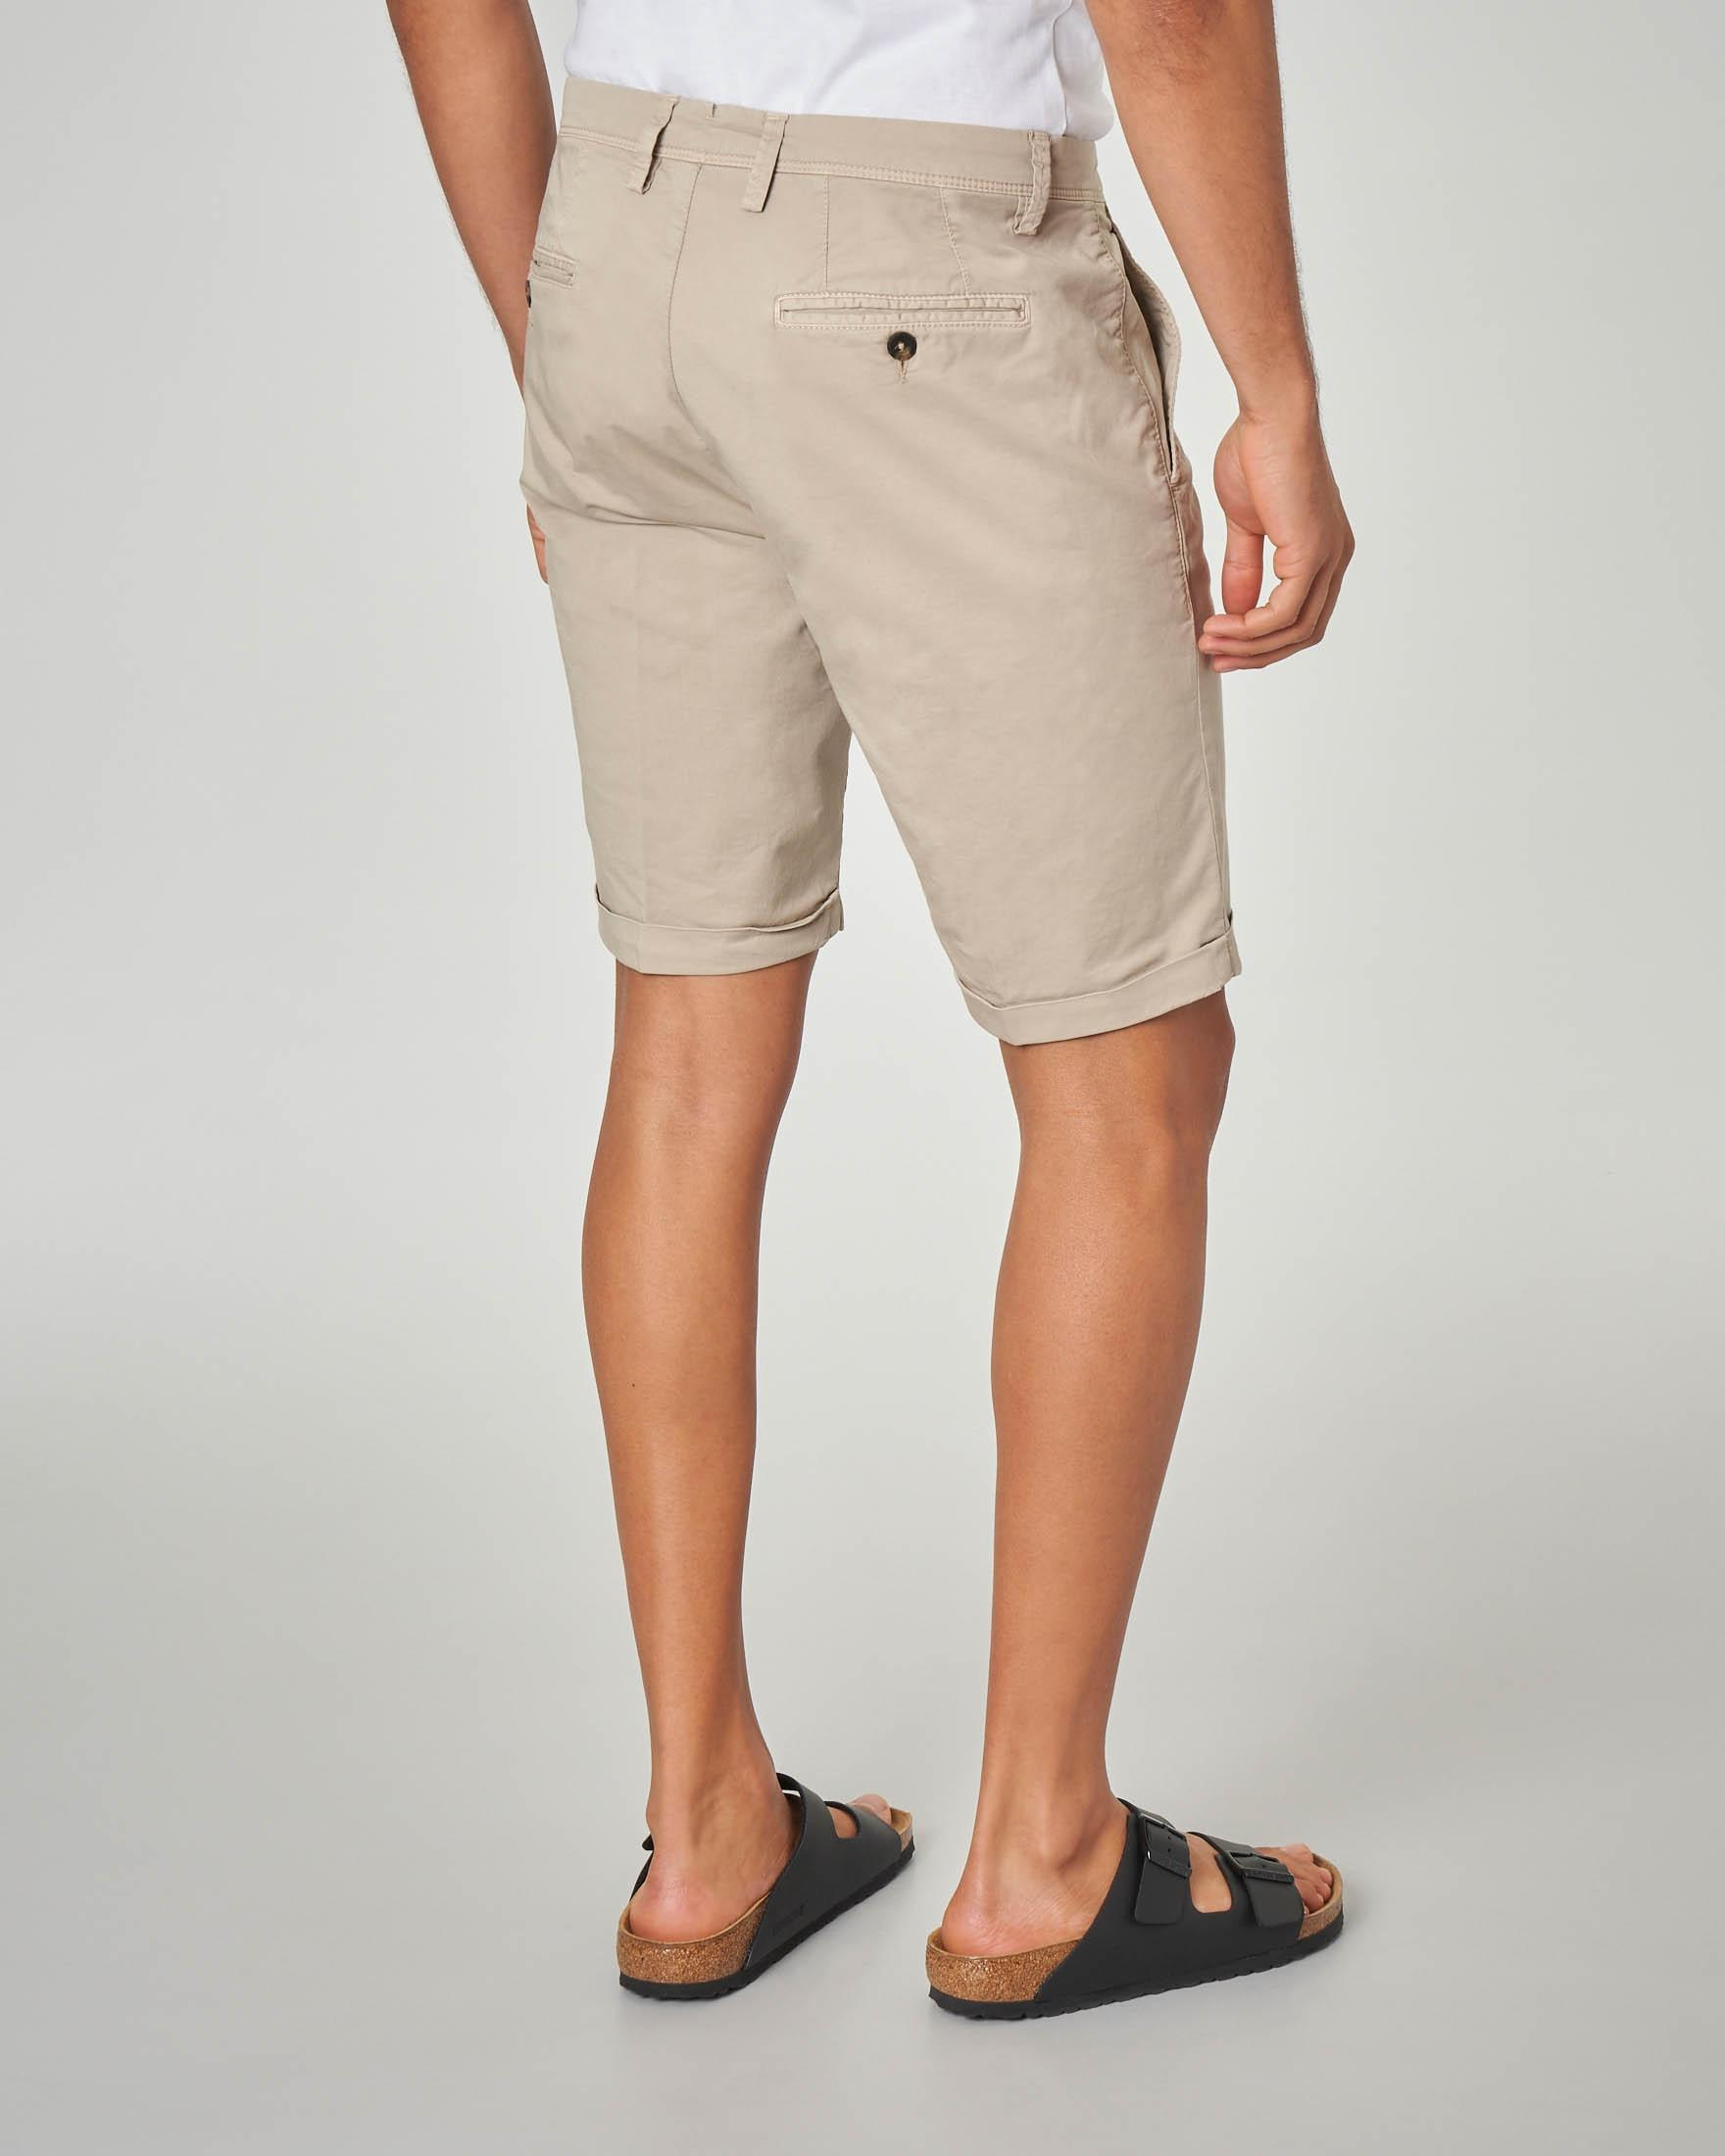 Bermuda chino beige in gabardina stretch